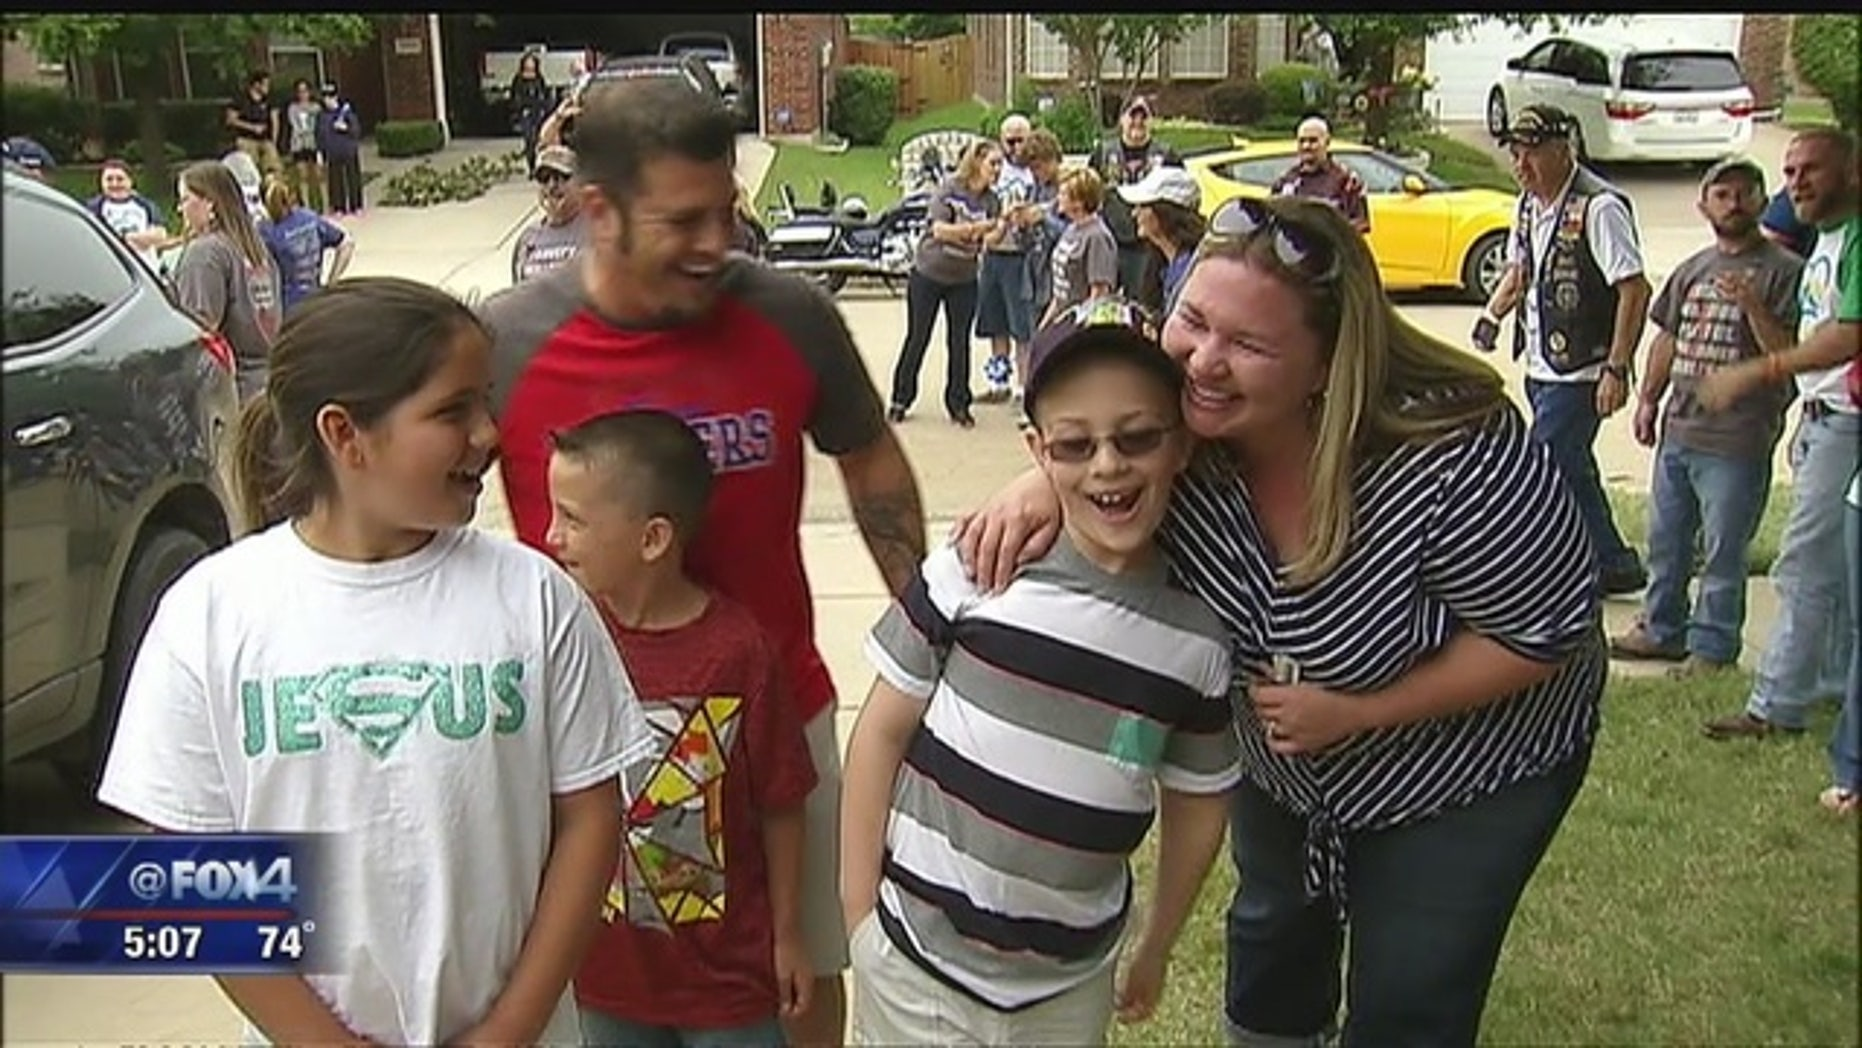 Bryce Aswell, center, arrives at his home to see his new room with his family.